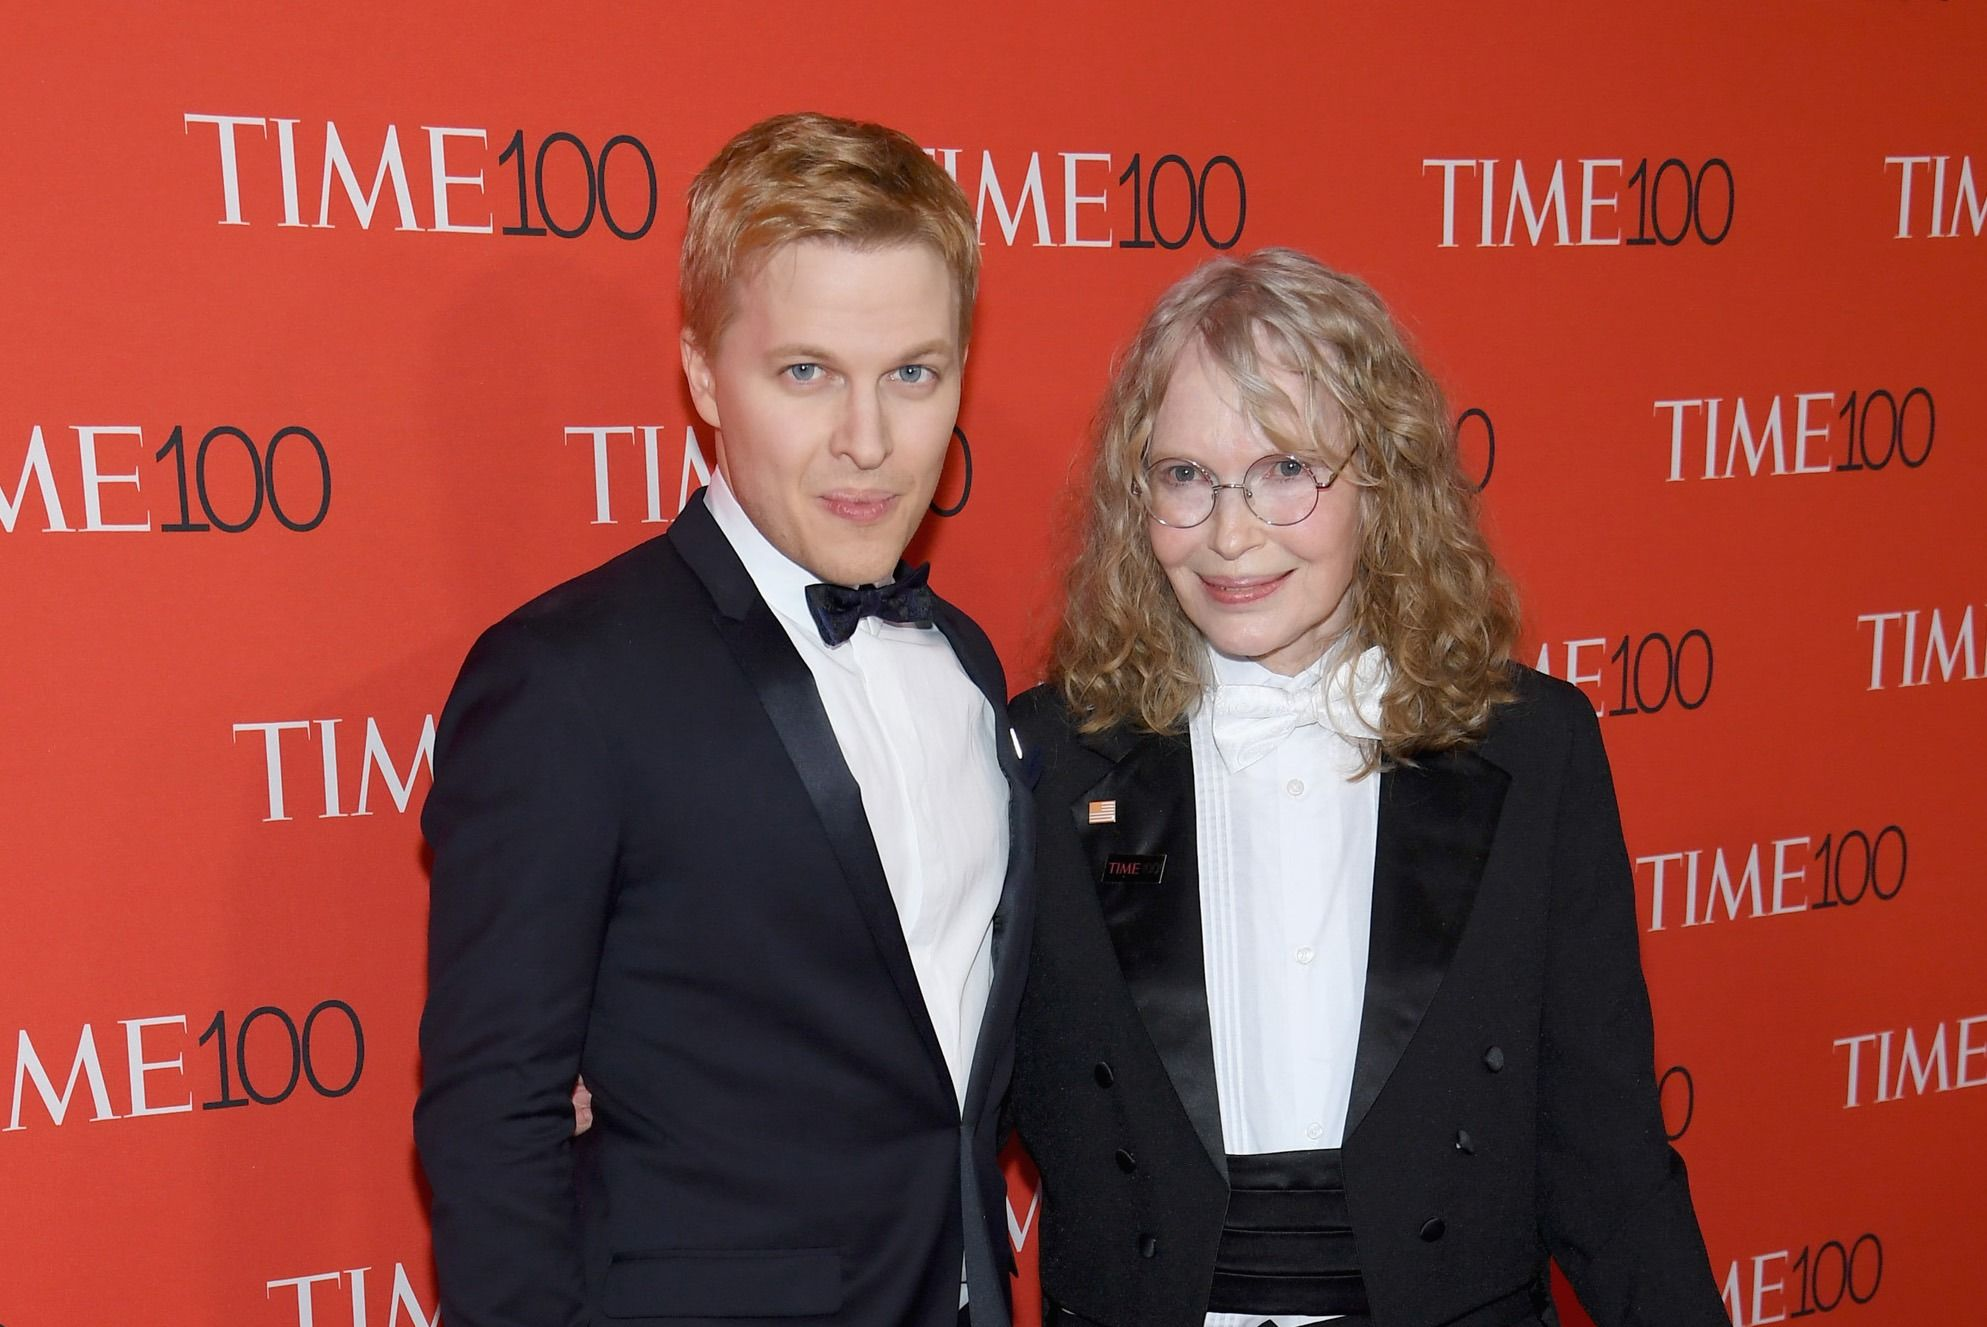 Ronan Farrow and Mia Farrow at the Time 100 most influential people